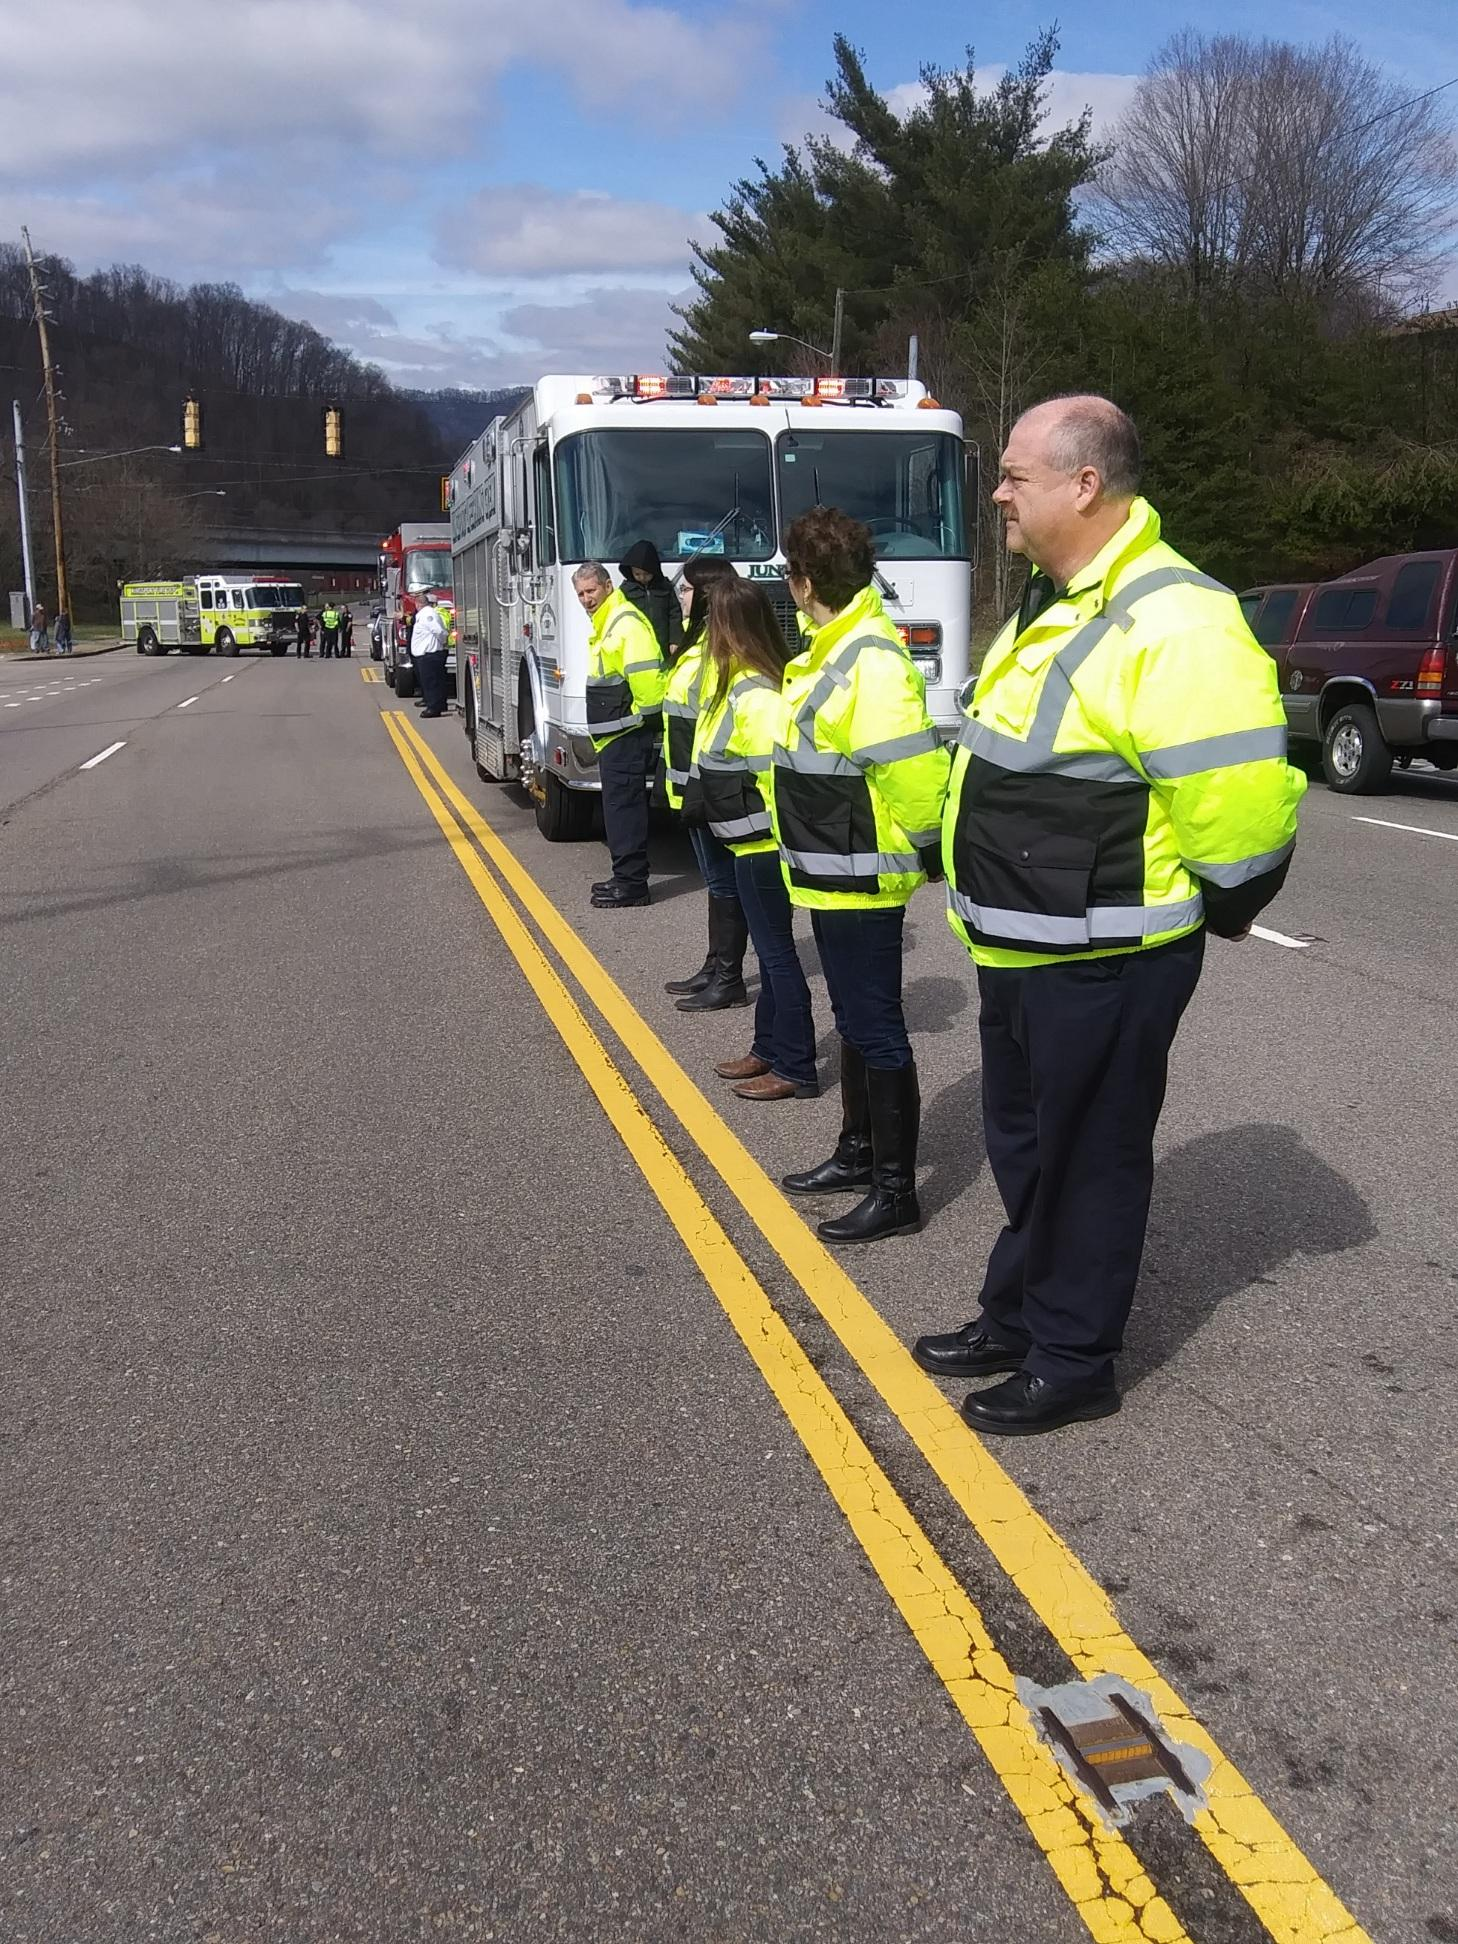 Several of our members stood by to pay our respects to Sgt. Steve Hinkle of the Sullivan County Sherrifs Department. RIP Sgt. Steve Hinkle.